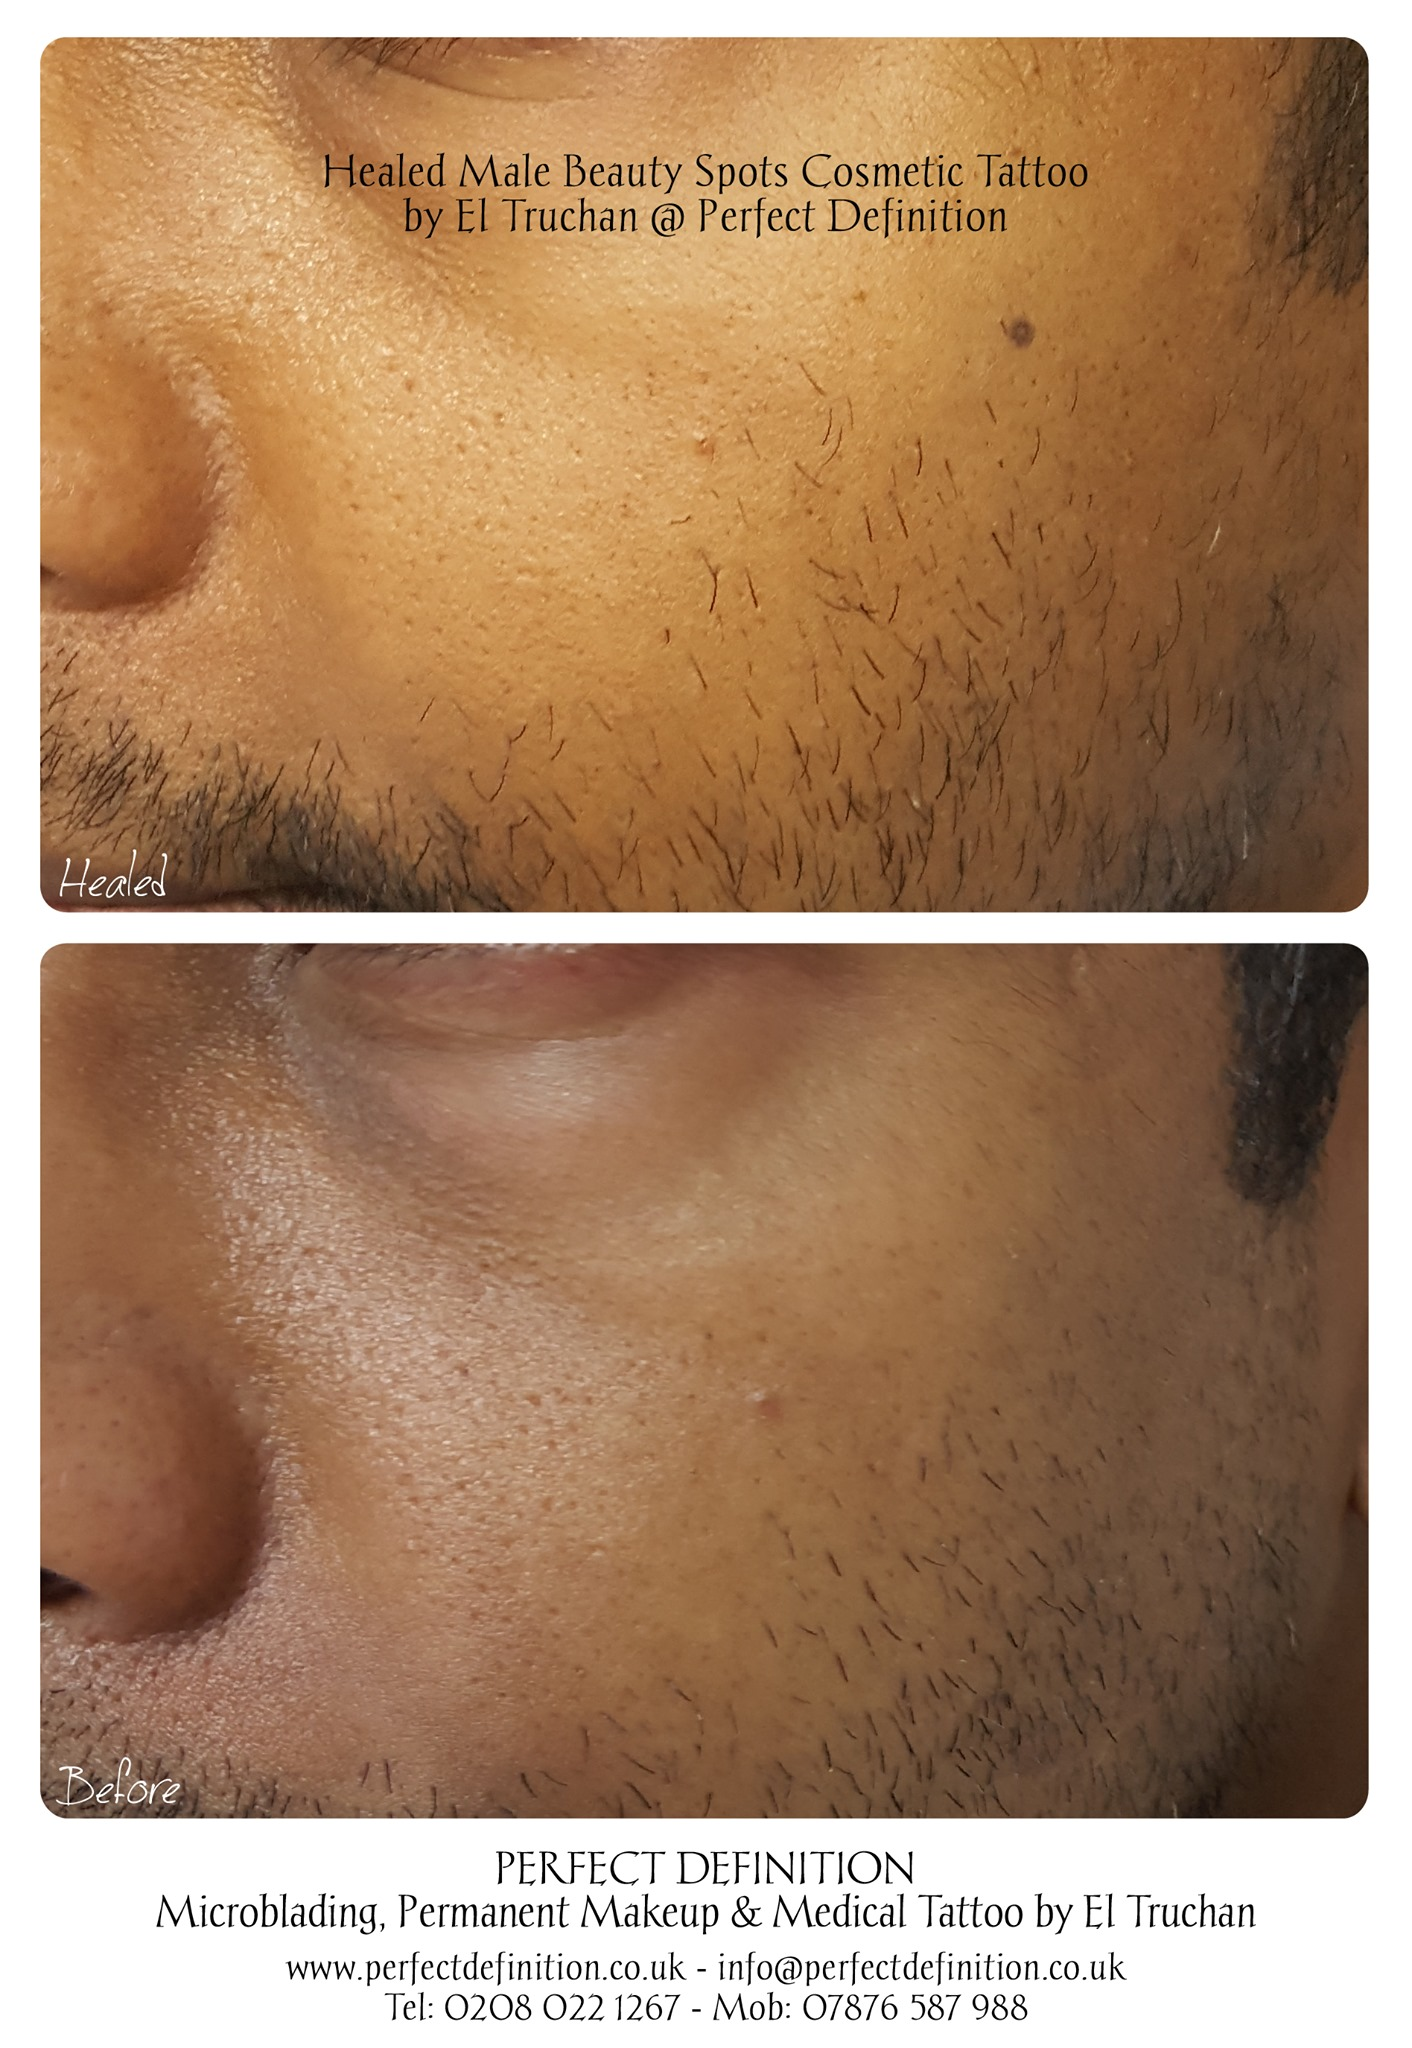 Healed Male Beauty Spots Cosmetic Tattoo